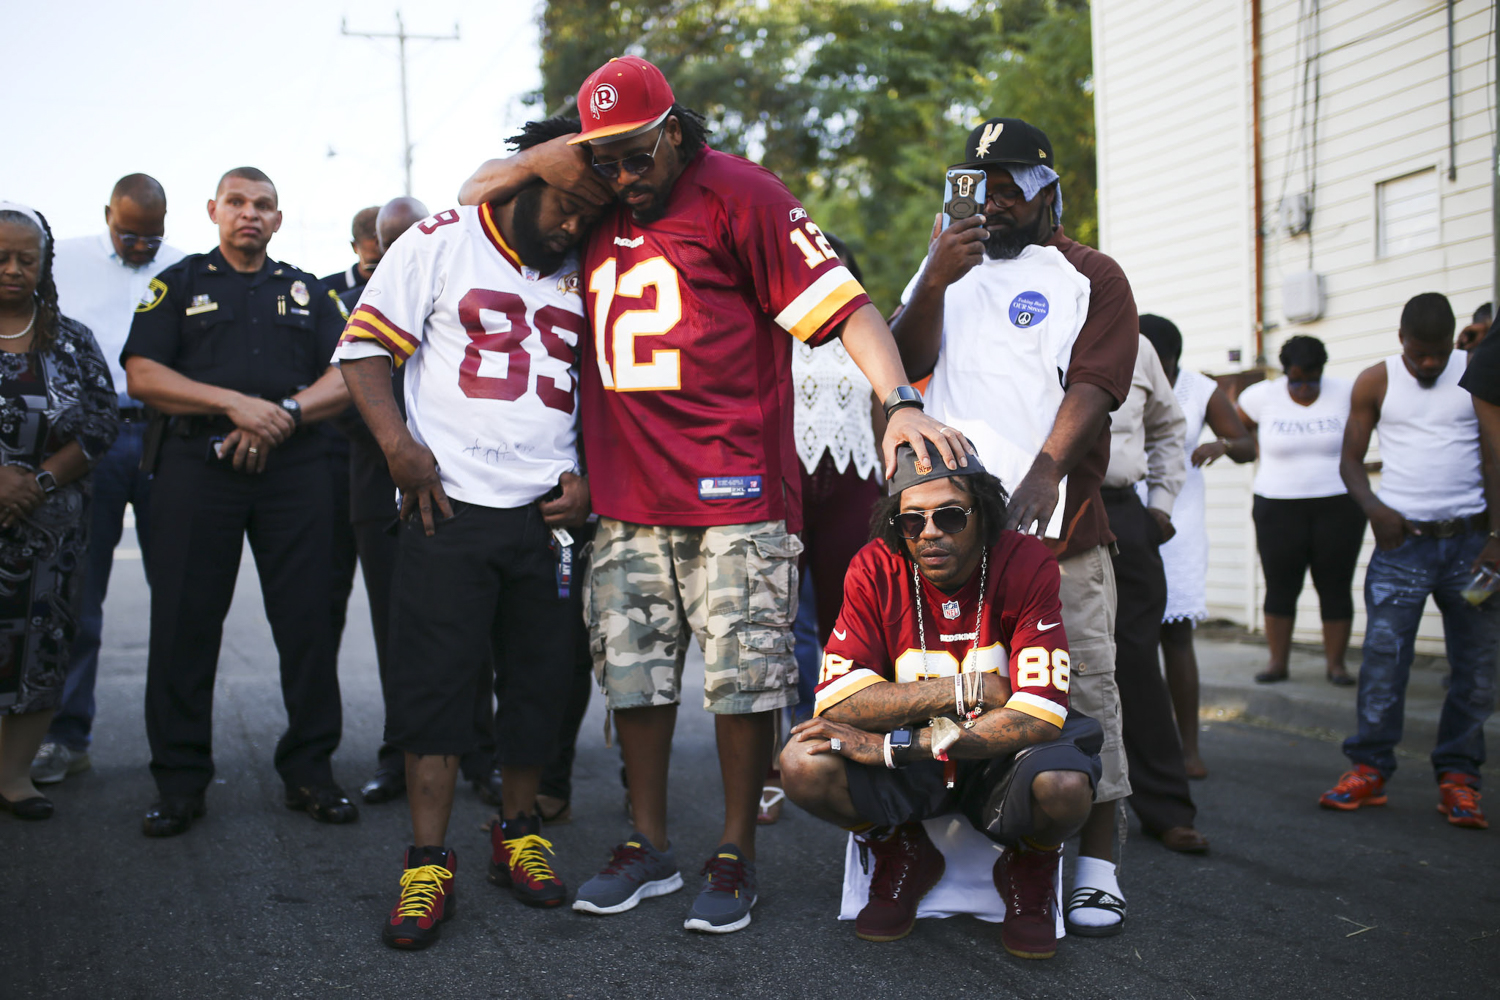 The three surviving brothers of Delqukis Ruffin, who was slain a week earlier, from left, Delveccio, Dondelprecio, and Damion, kneeling, who embrace during a moment of prayer during a vigil for Delqukis Ruffin on Harding Street in Petersburg on Sunday, Sept. 24, 2017. [Scott P. Yates/progress-index.com]